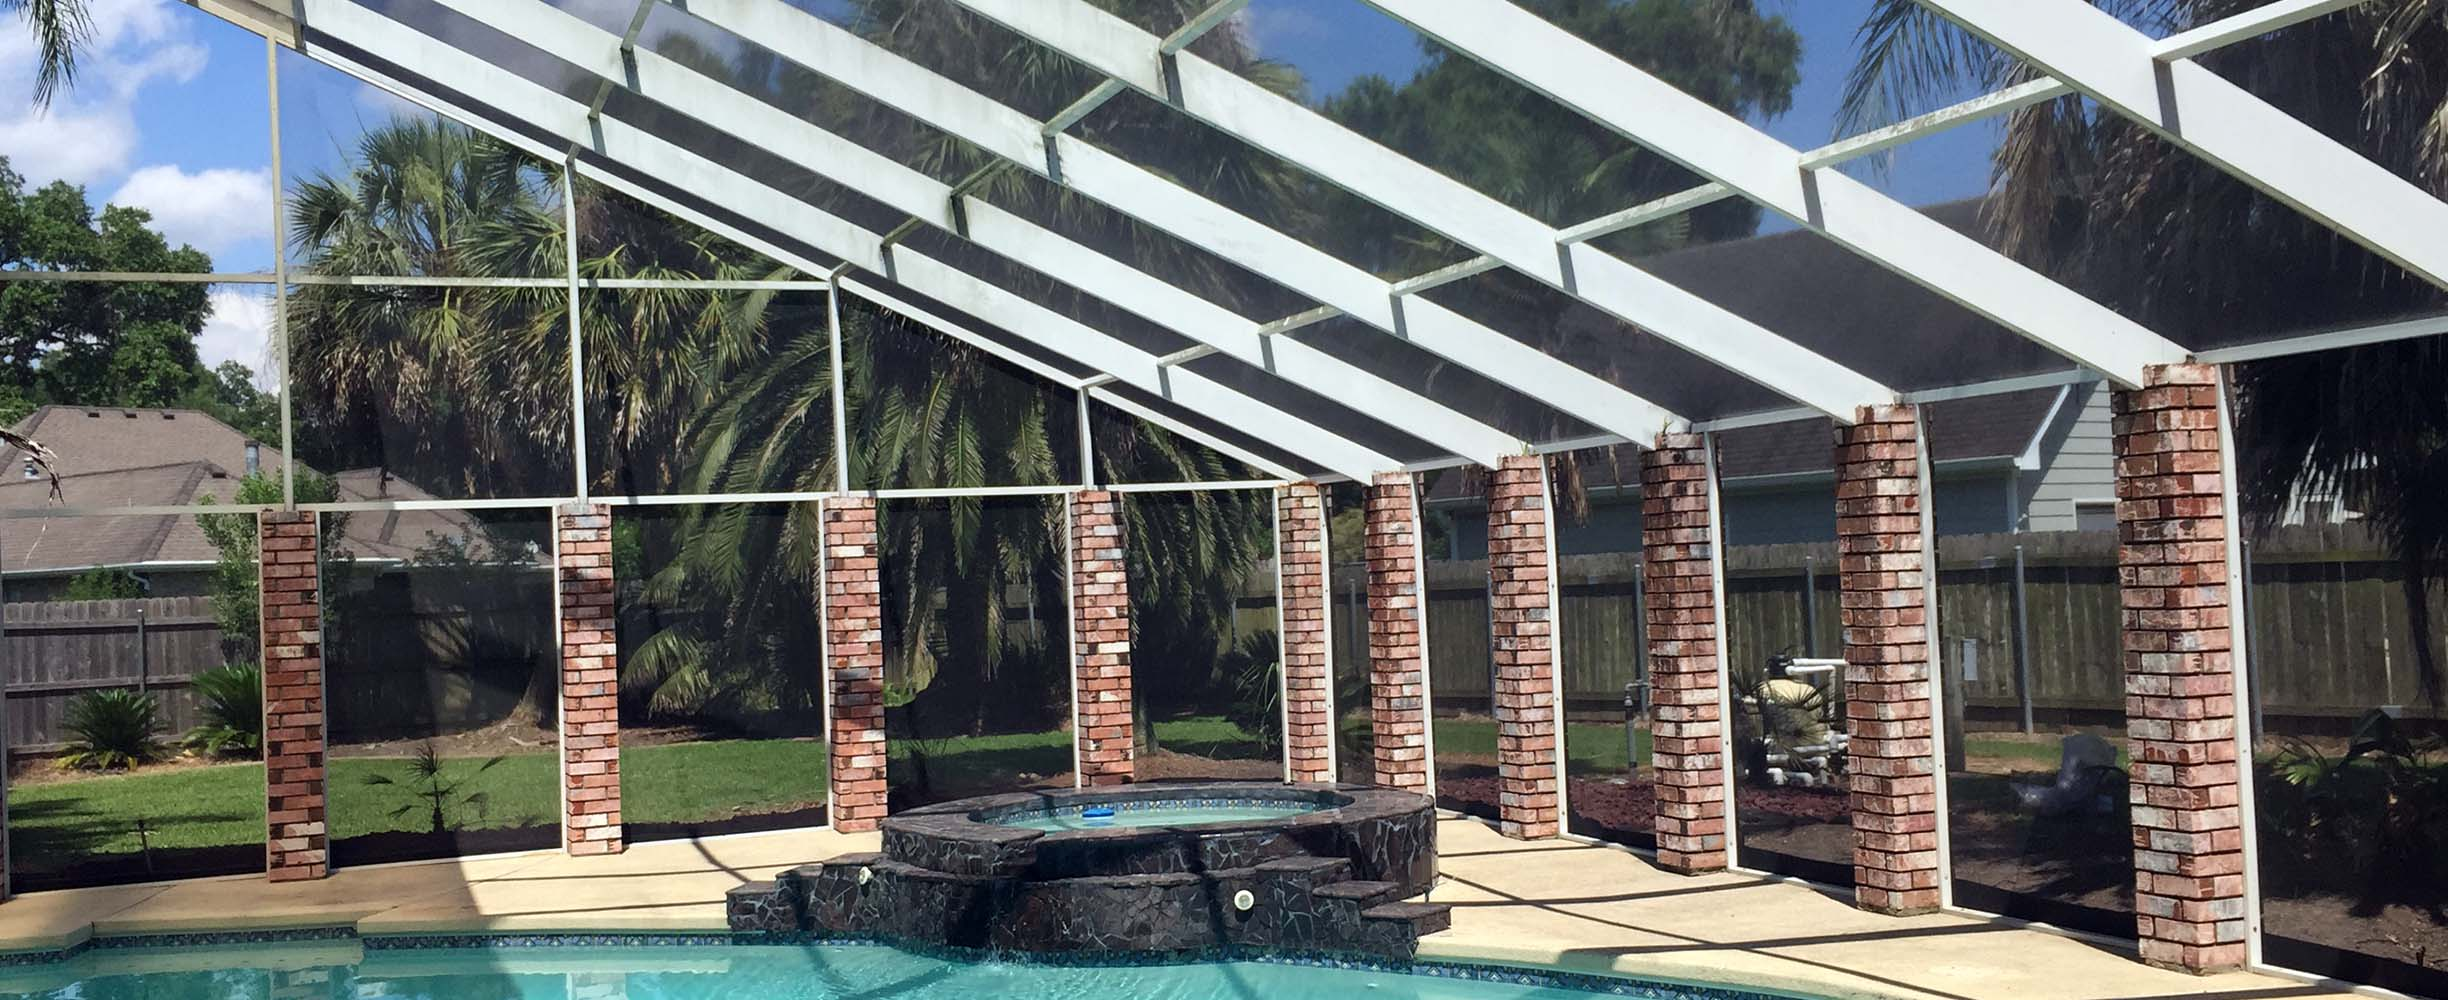 Pool enclosure with aluminum, plastic and glass